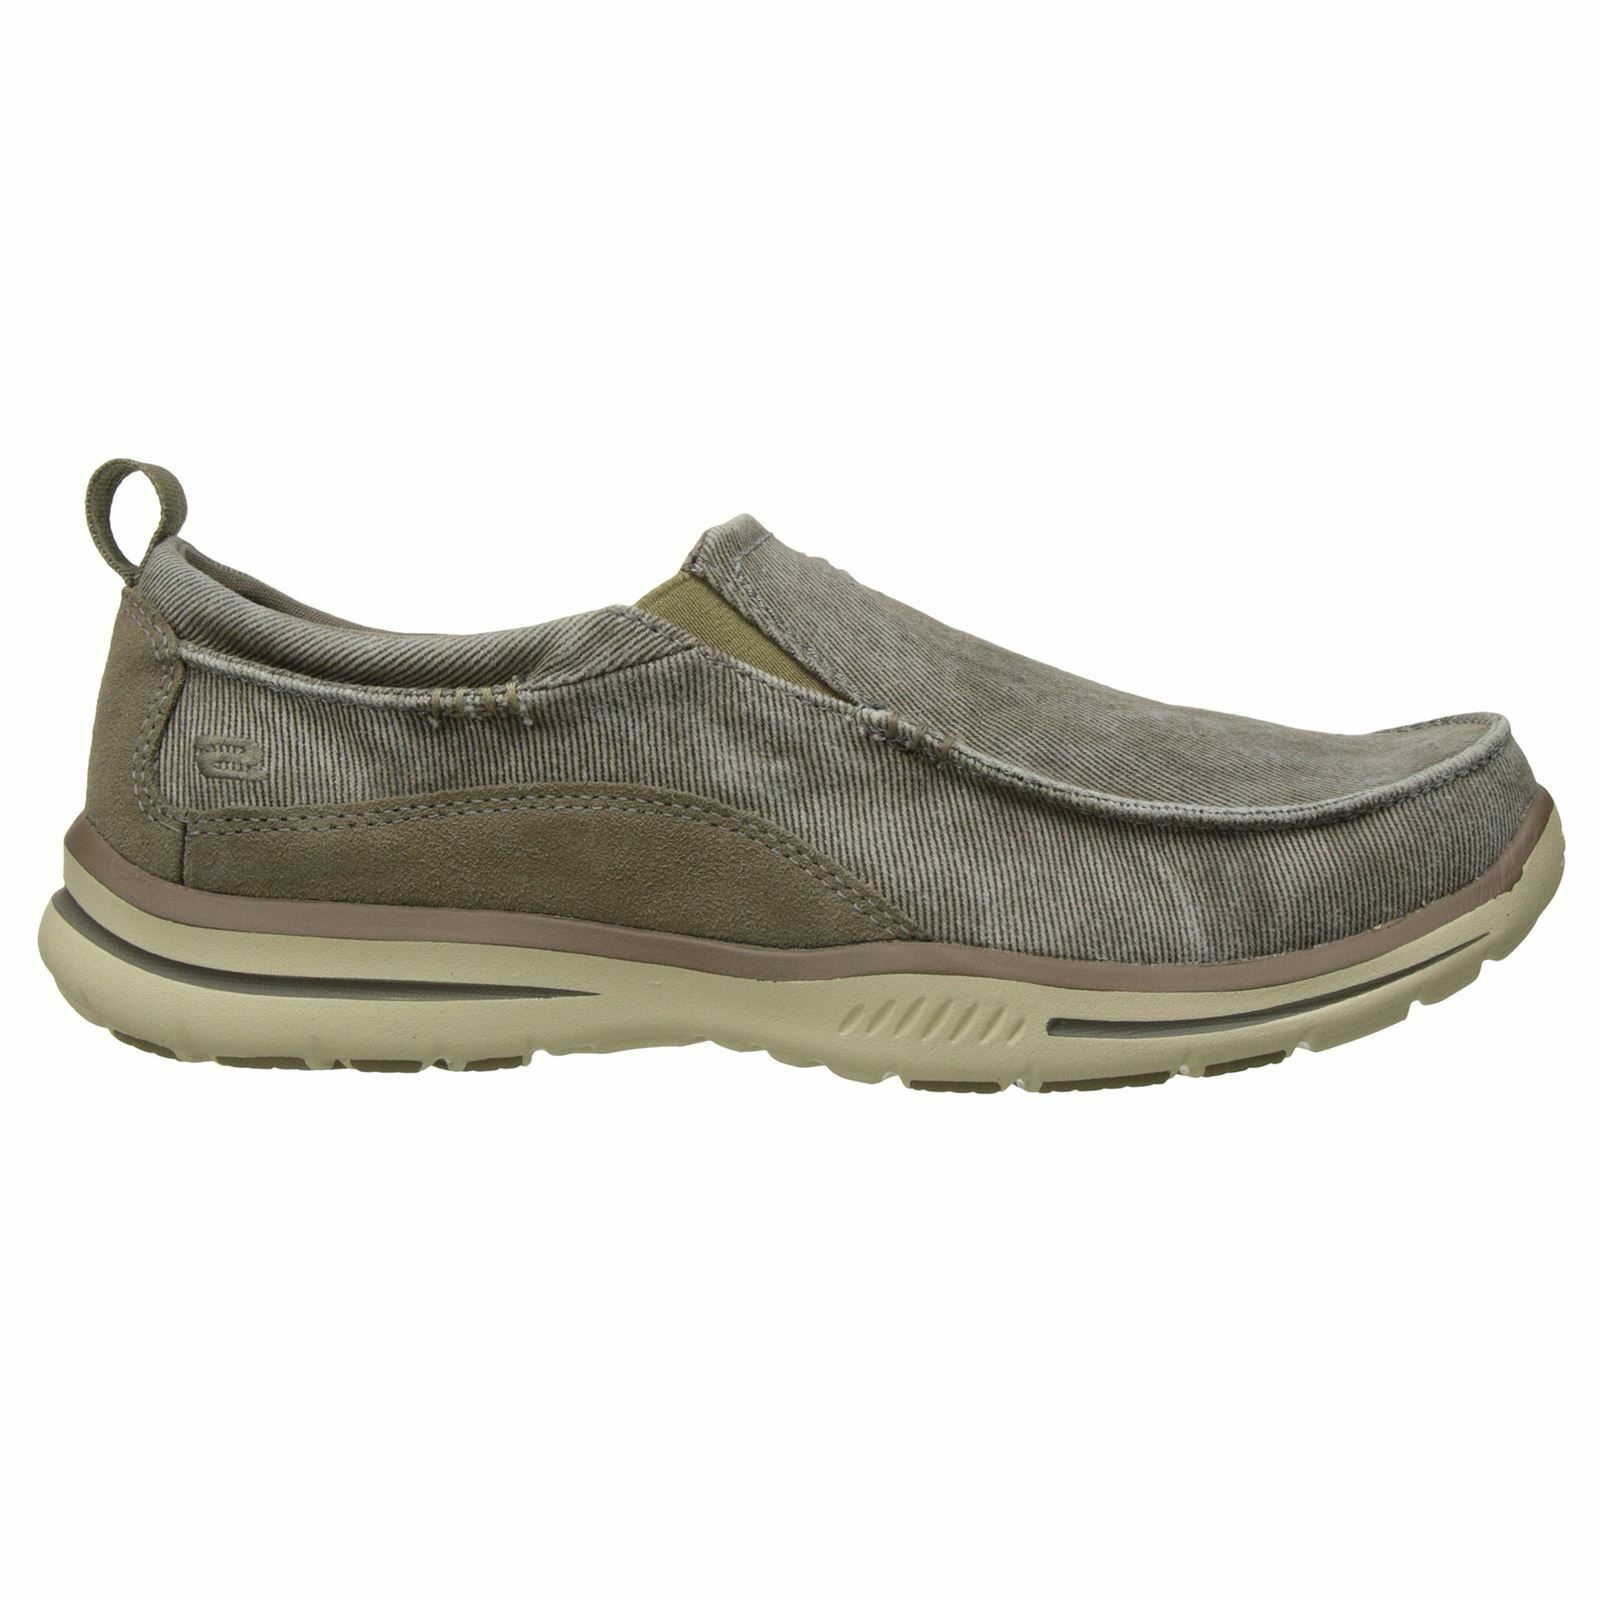 Skechers Elected - Drigo Taupe Mens Slip on Casual Shoes Loafers New